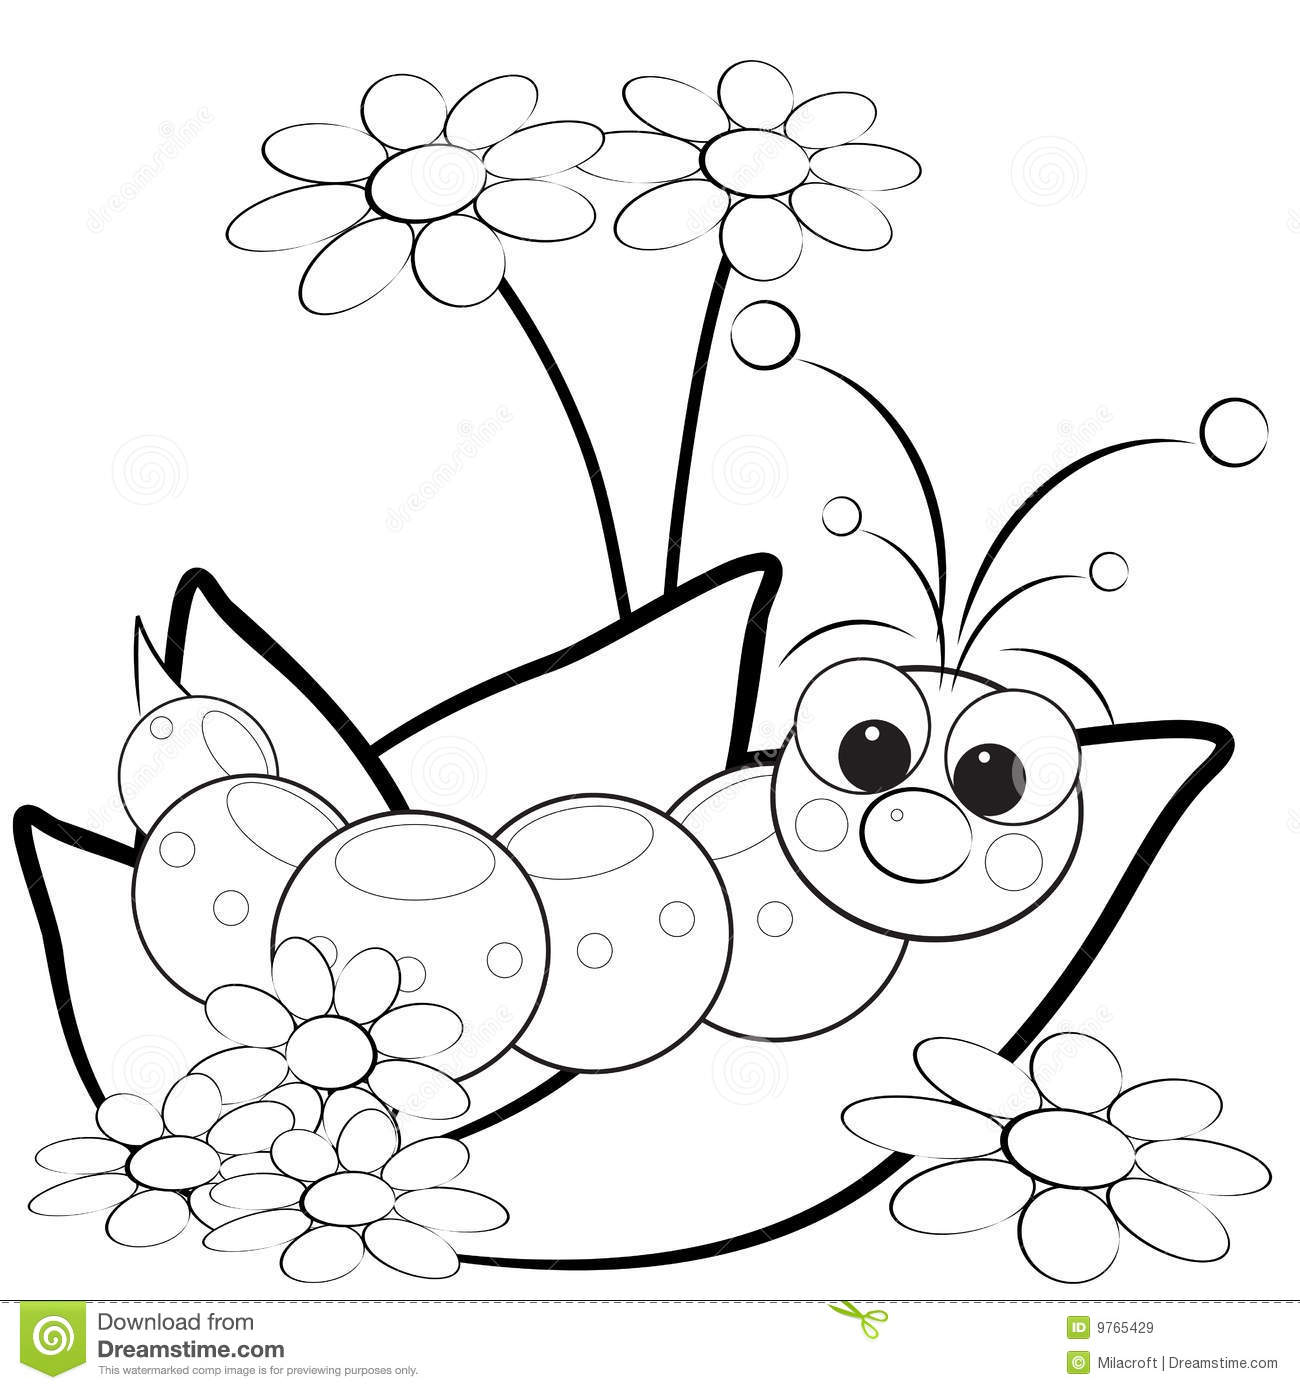 Coloring Page - Grub And Flowers Stock Vector - Illustration of ...